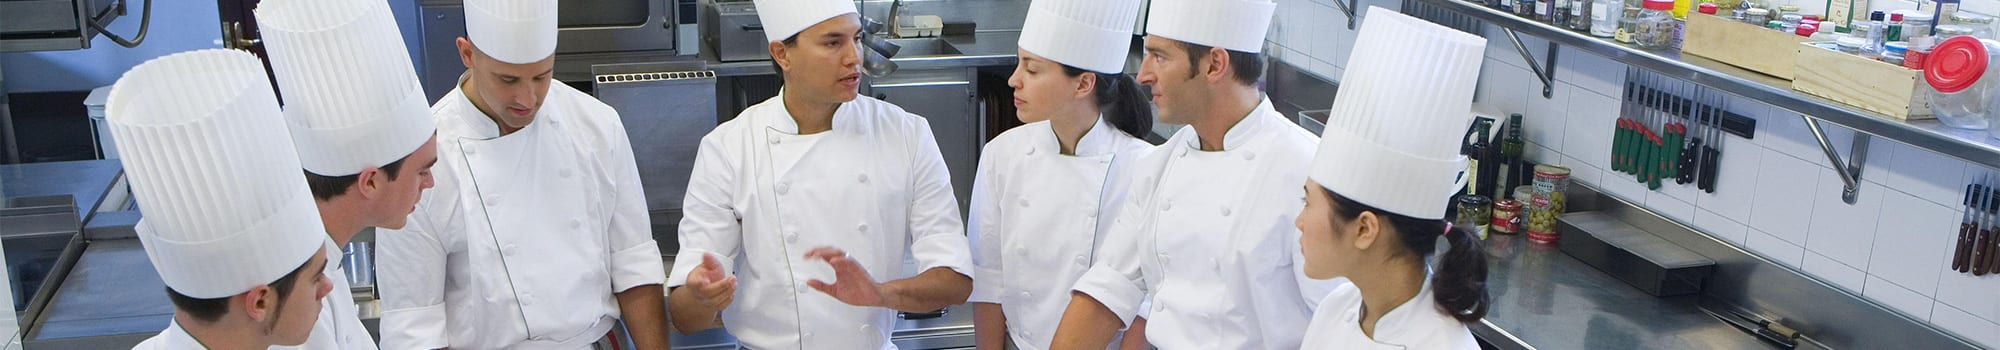 Hints for a better restaurant kitchen staff structure - Electrolux ...